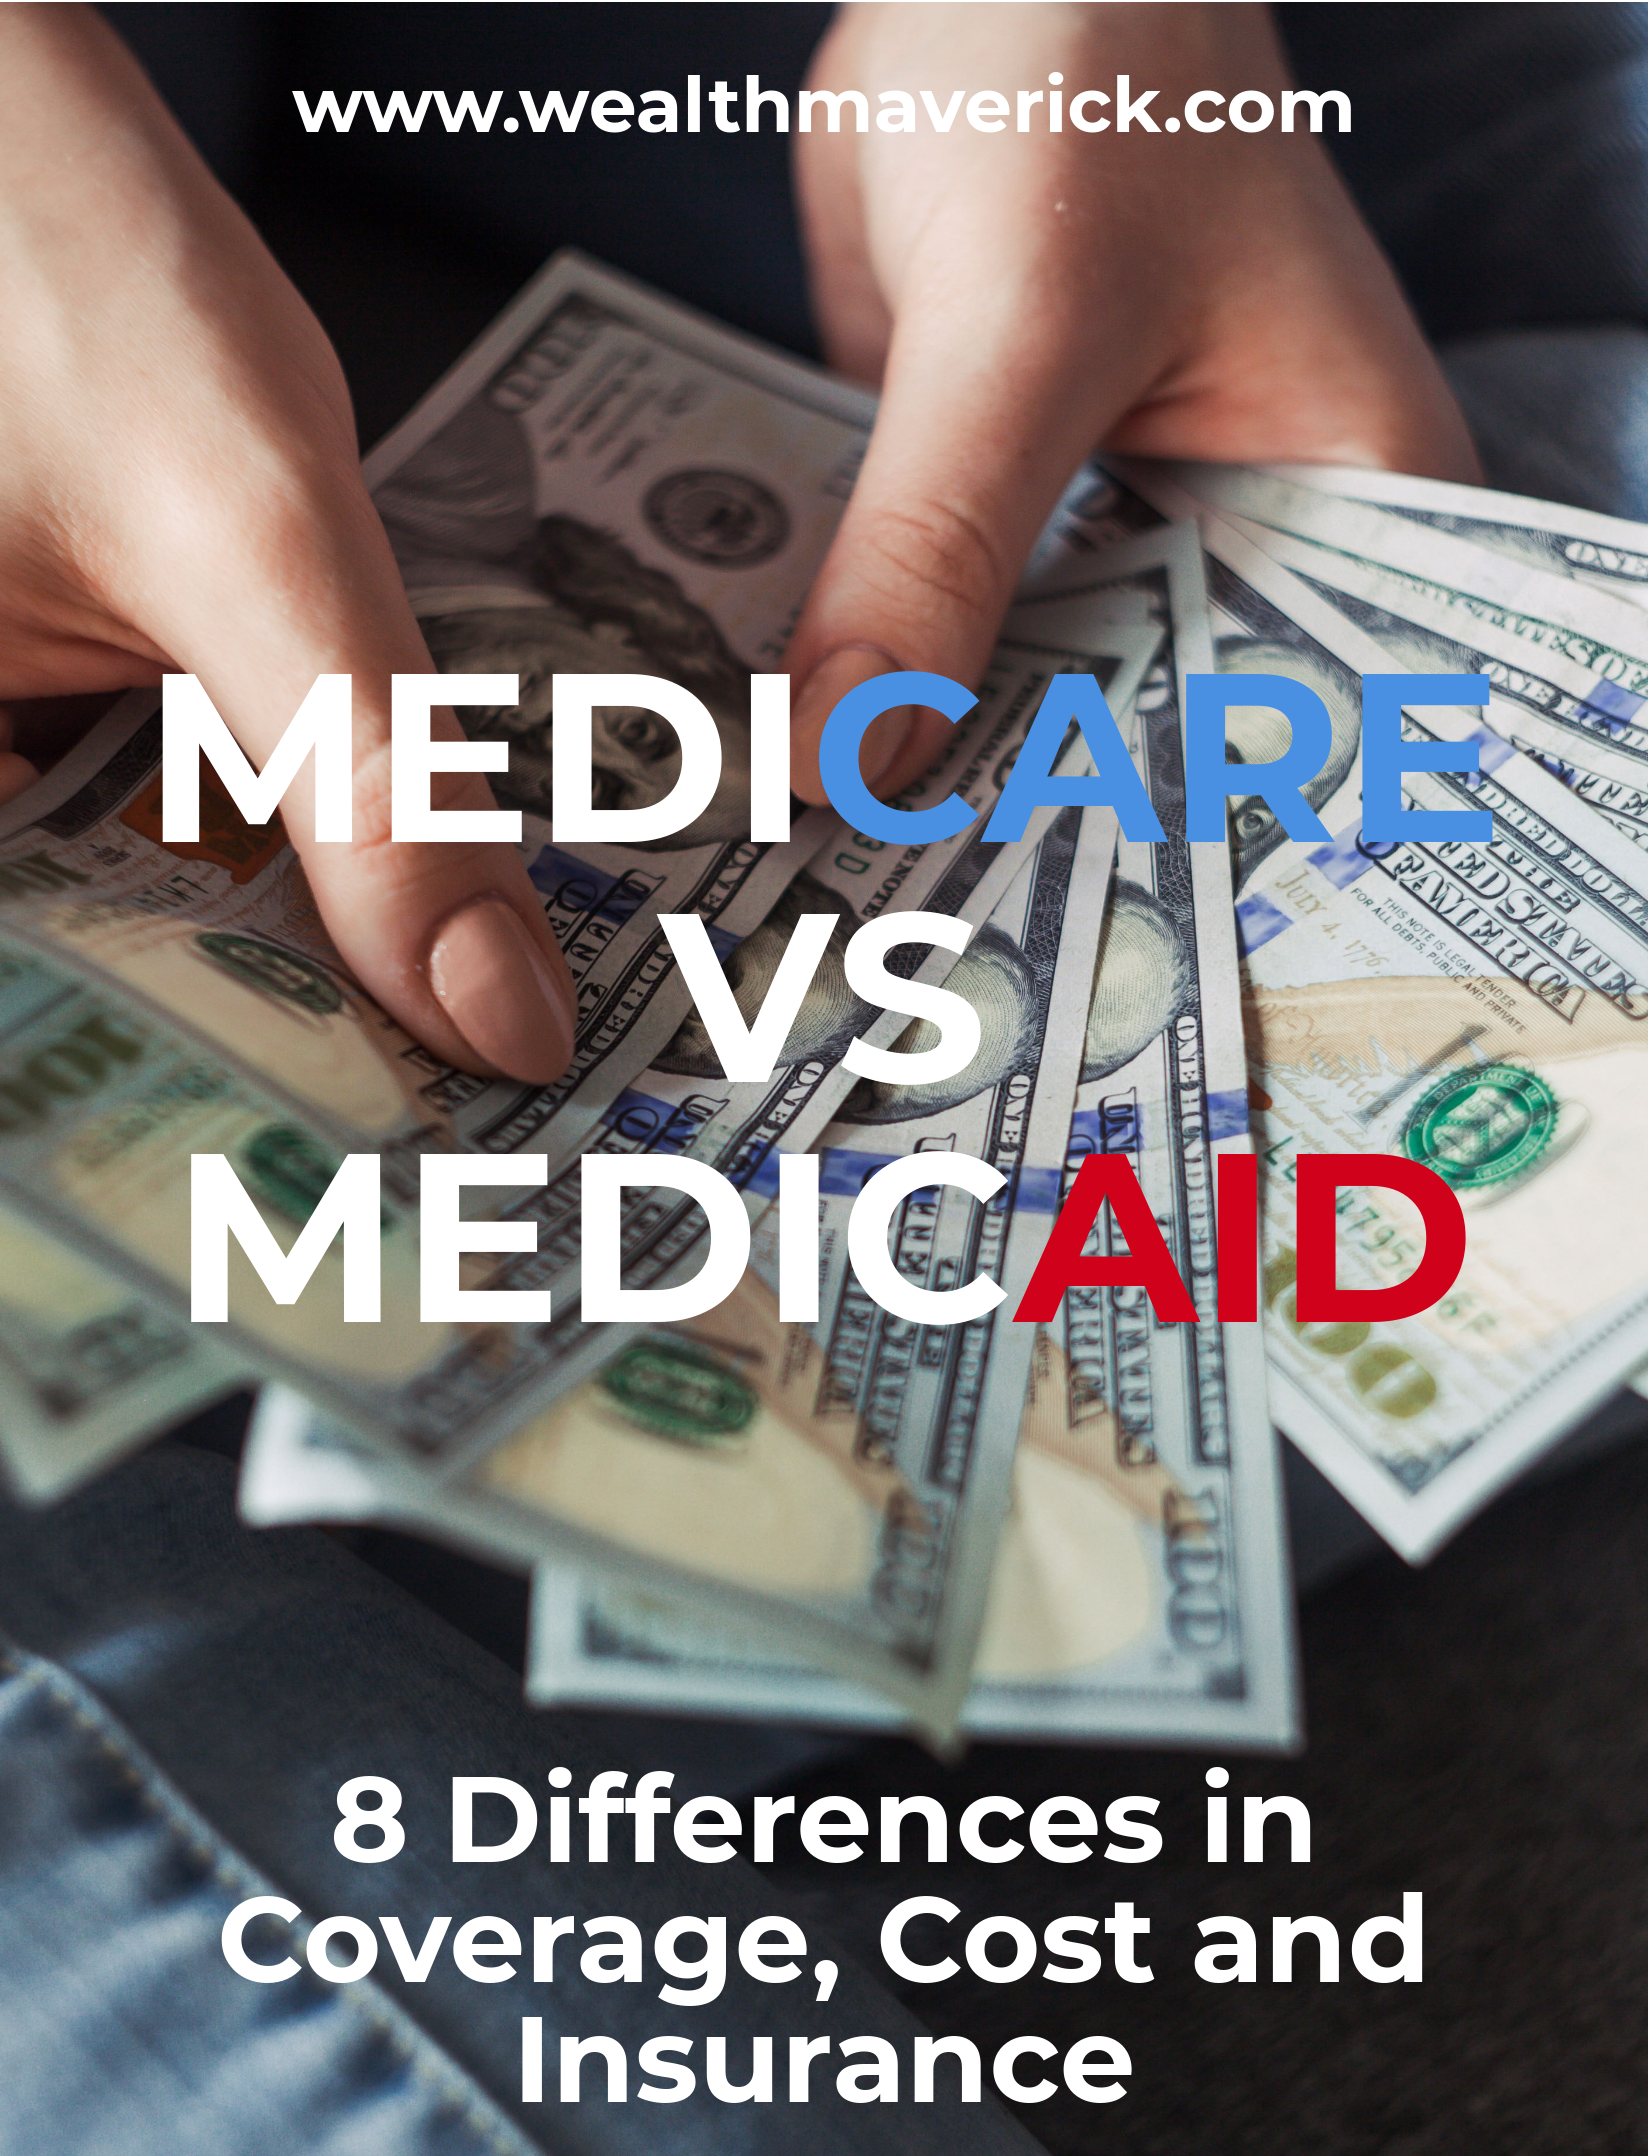 Medicare Vs Medicaid 8 Differences In Coverage Cost Insurance Life Insurance Facts Medicaid Medicare